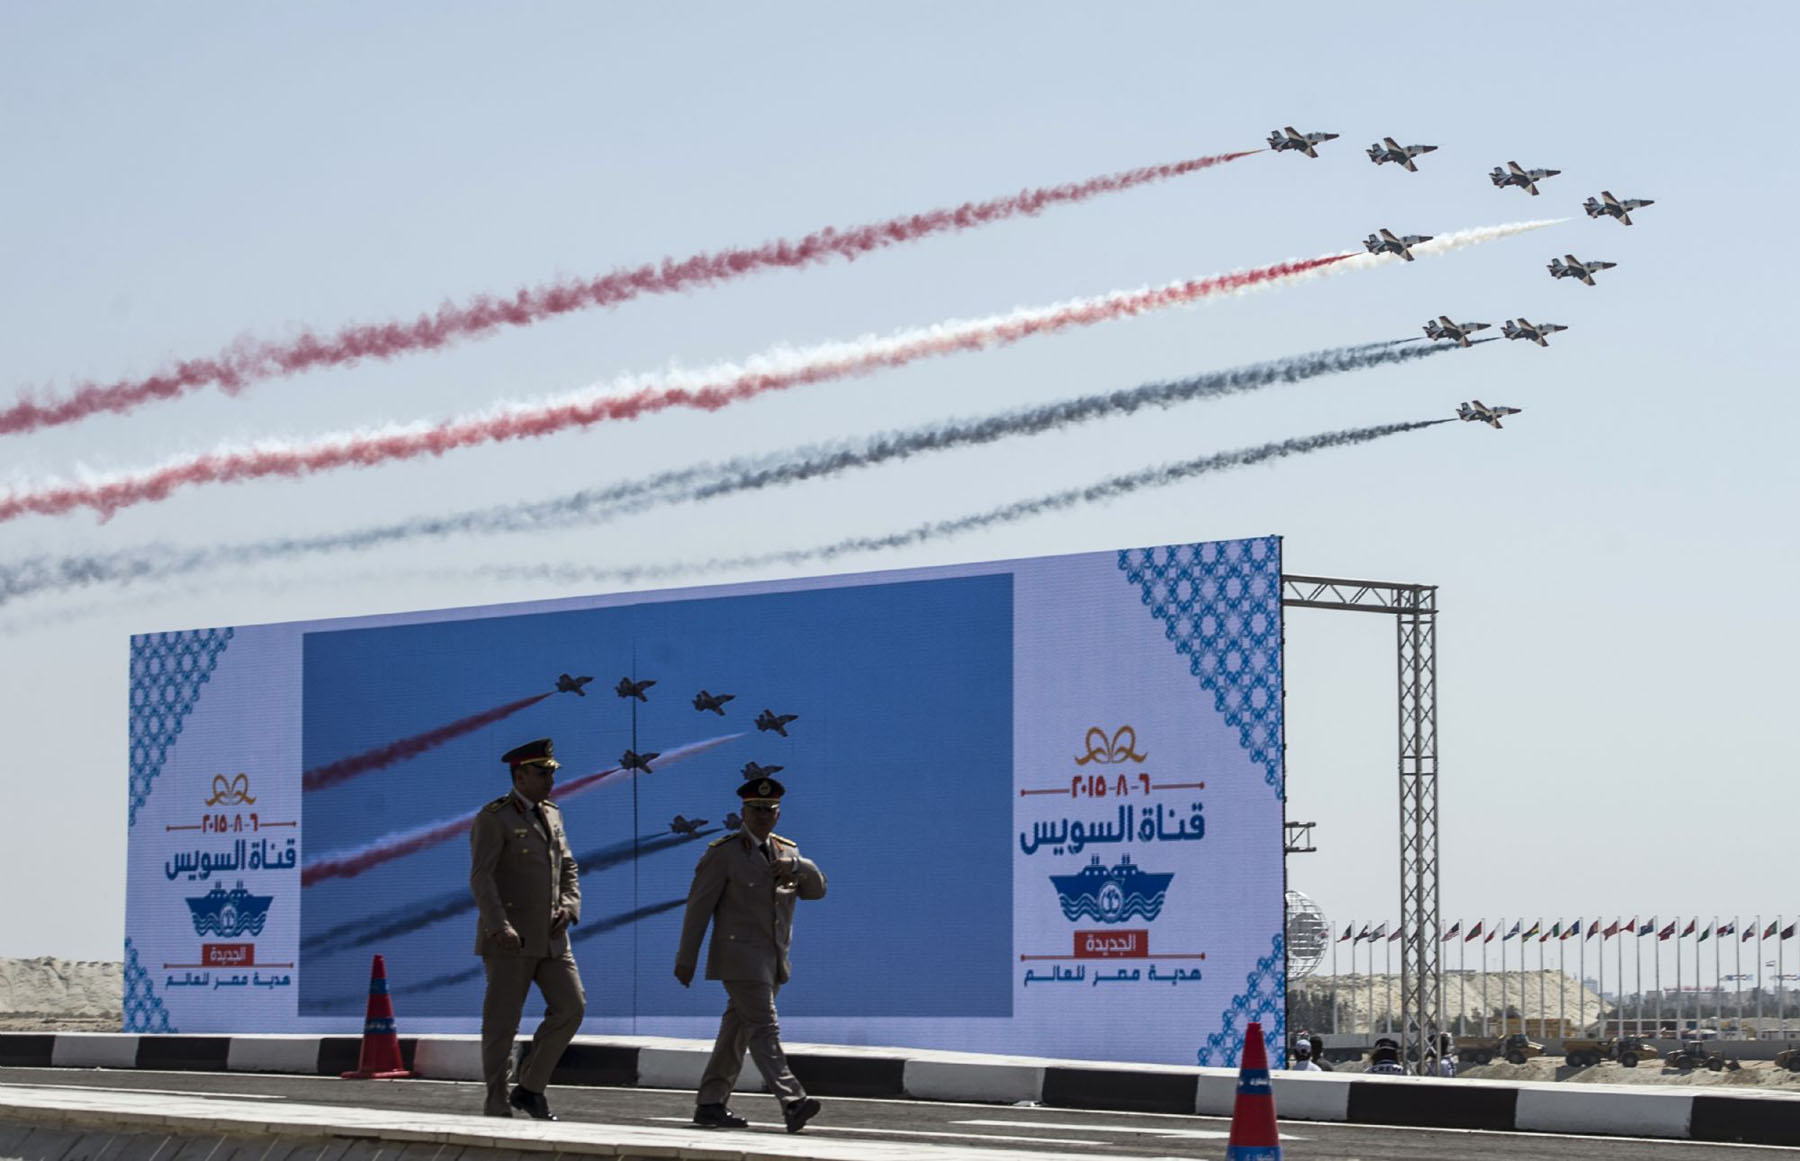 Increasing role. A file picture shows Egyptian Army officers  walking in front of a huge screen during the opening ceremony of a waterway at the Suez Canal in Ismailia. (AFP)